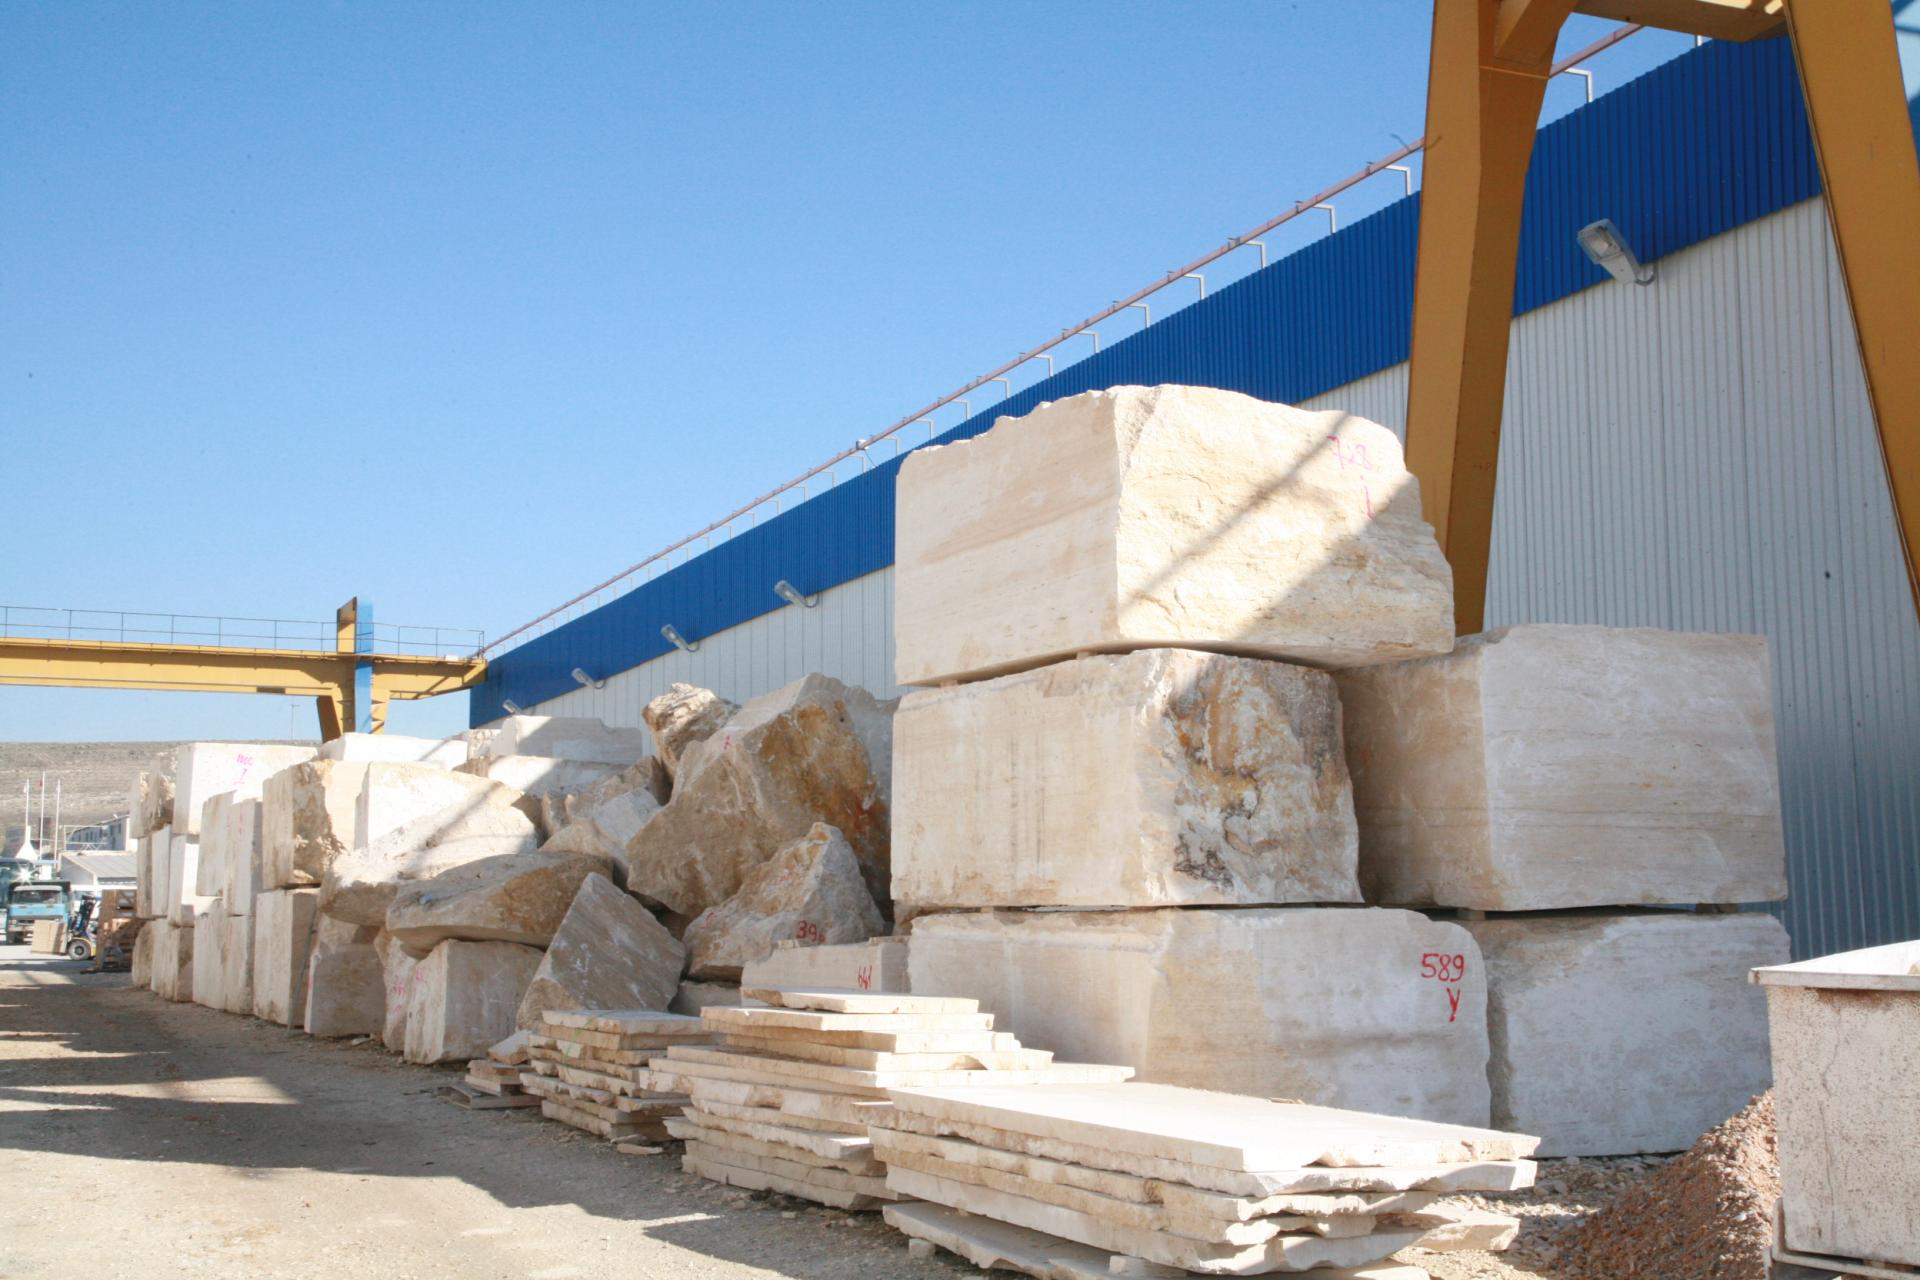 Turkish Exporters will focus on the Middle East - Stone World